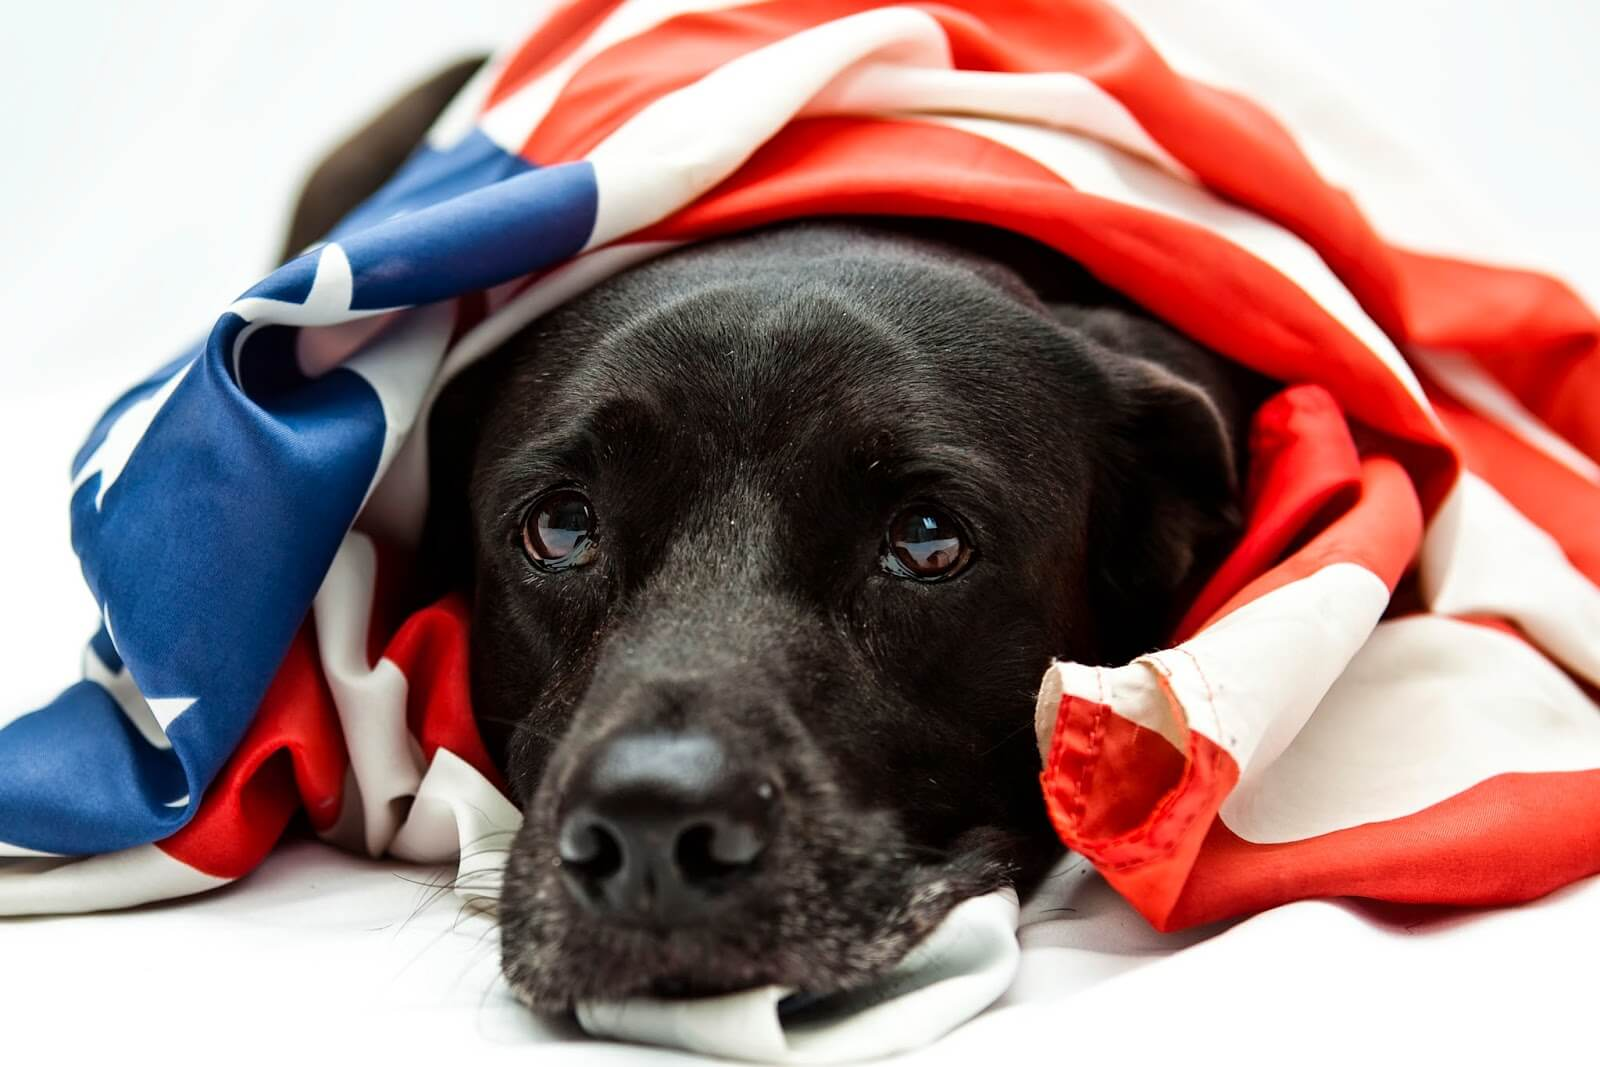 This poor pupper is patriotic, but petrified of fireworks